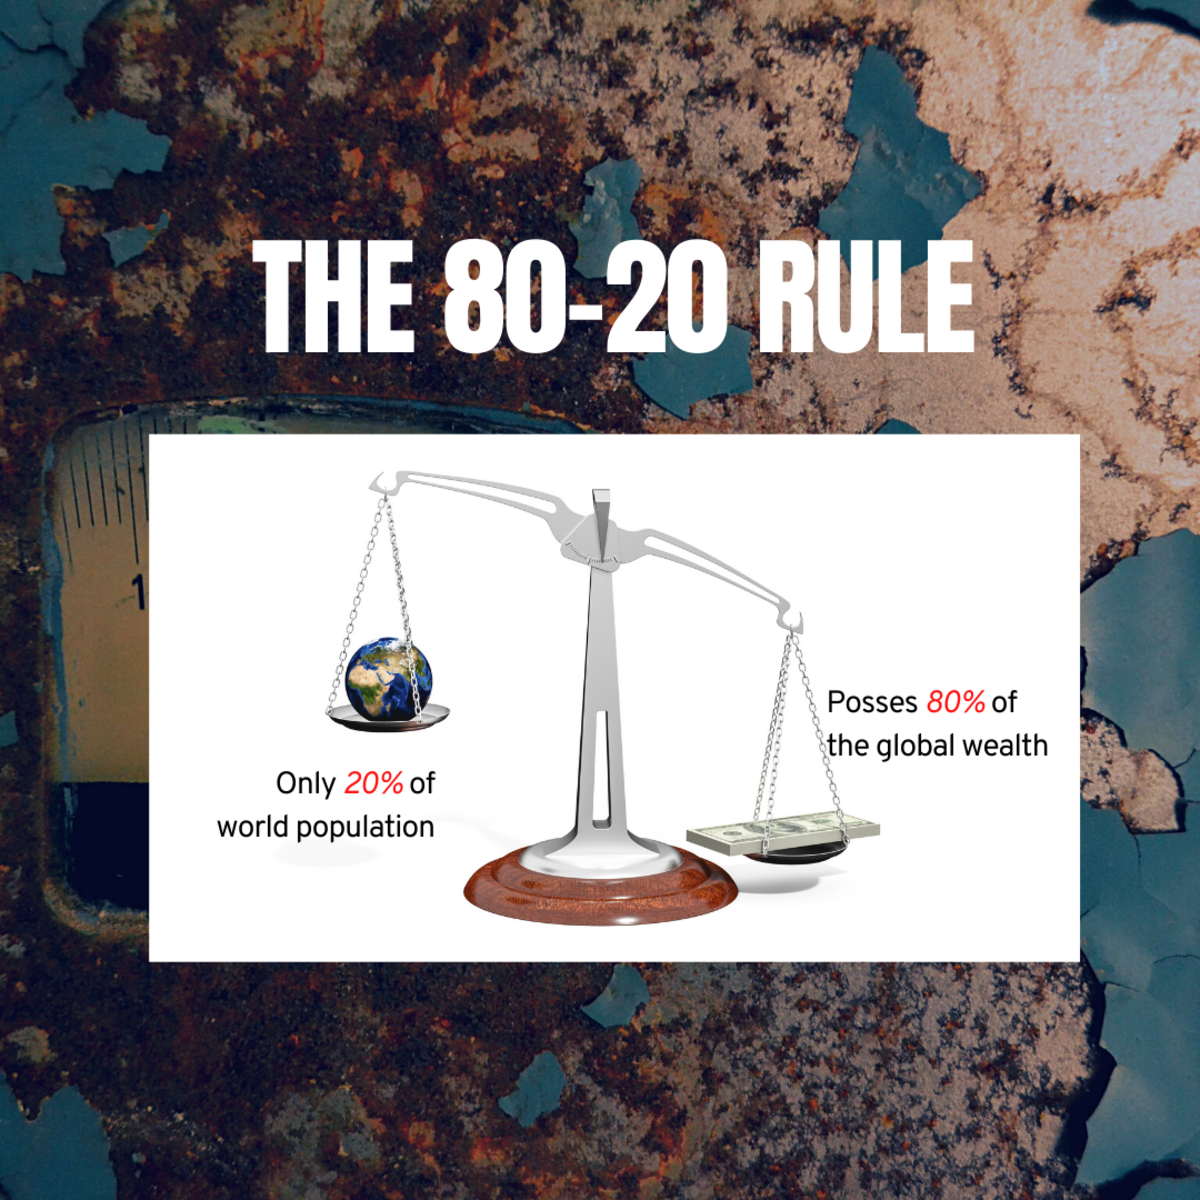 An example of how the 80-20 rule works.